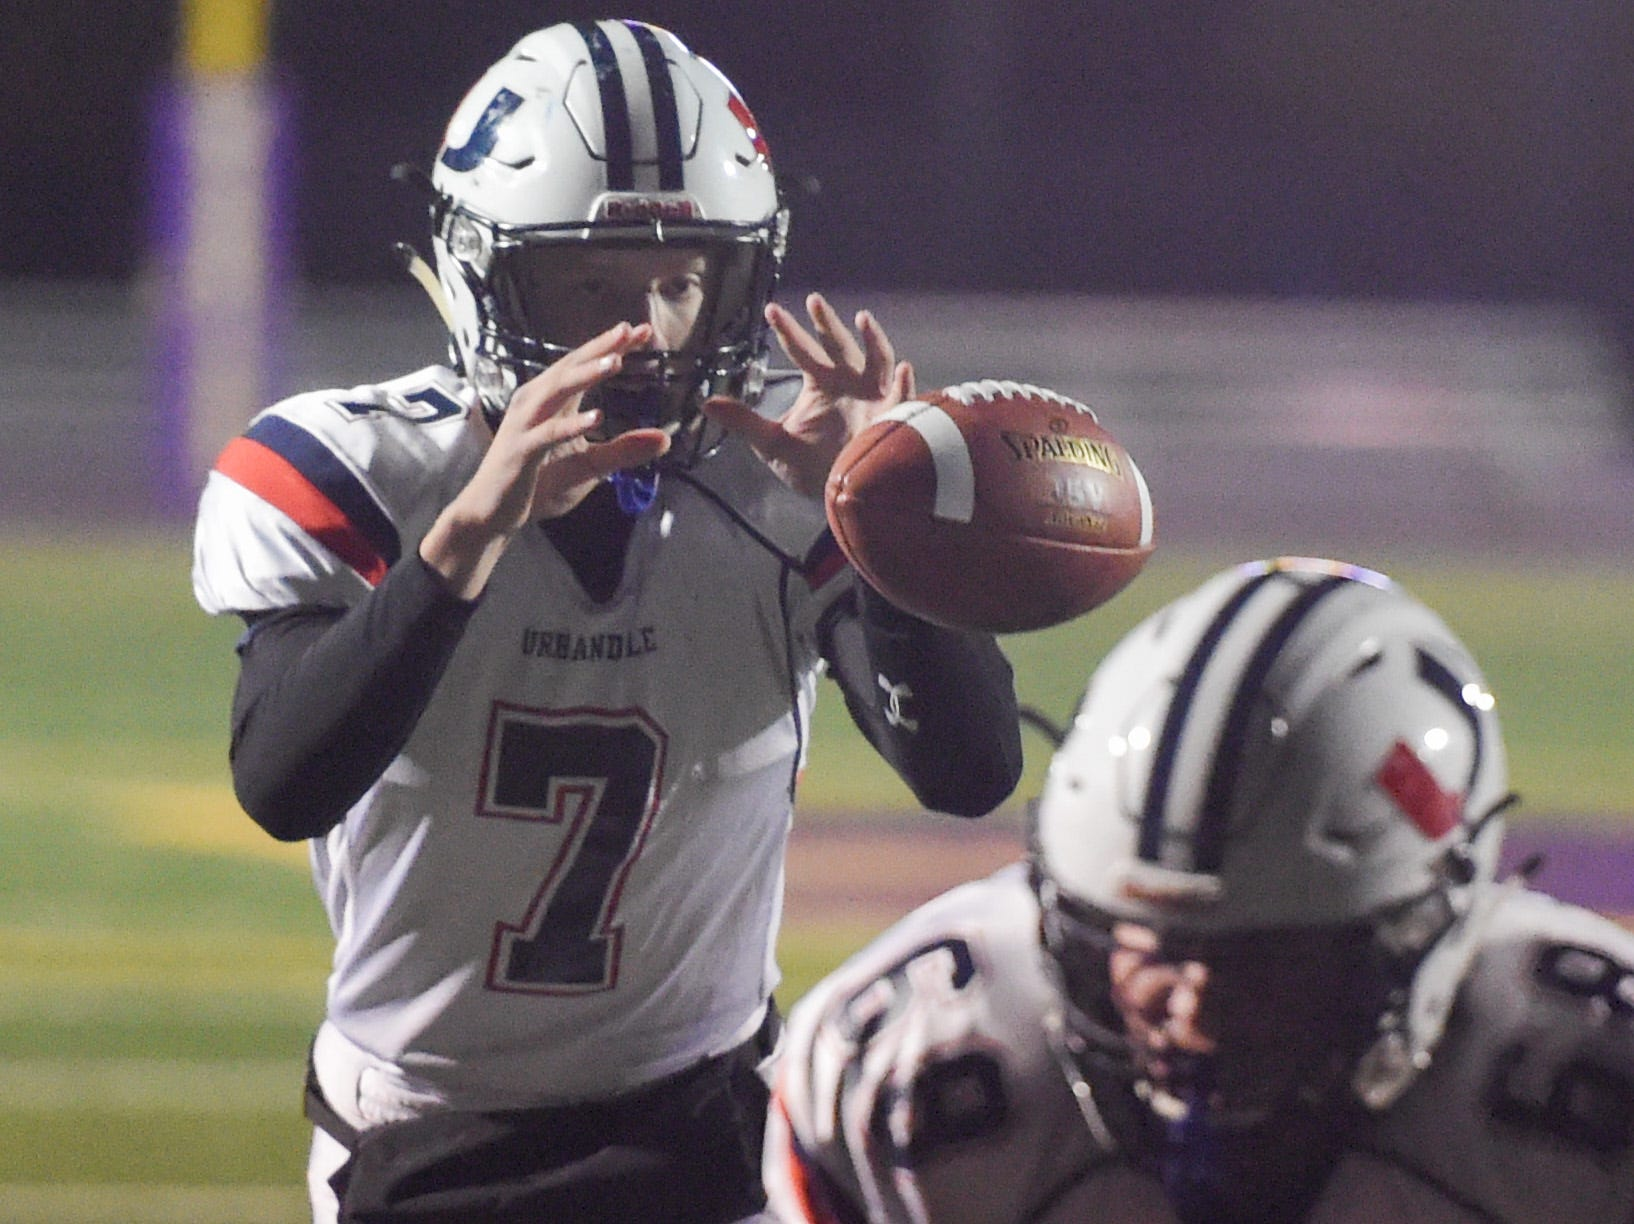 Urbandale quarterback Ty Langenberg (7) takes a snap on Friday, Oct. 26, 2018 during a playoff game between the Waukee Warriors and the Urbandale J-Hawks at Waukee High School.